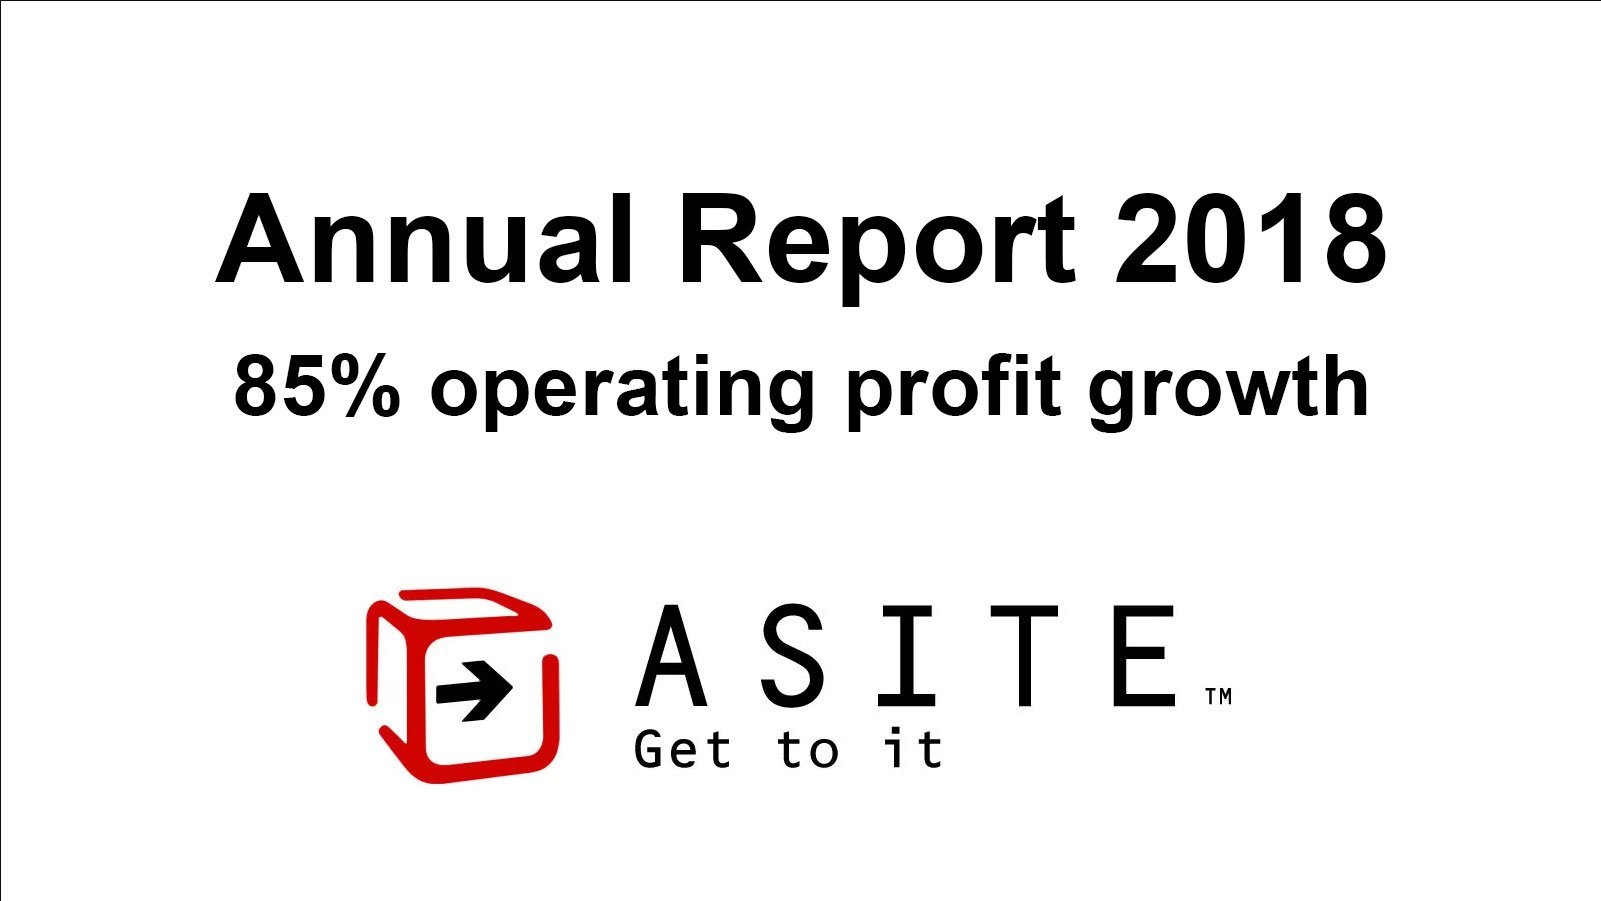 Asite announces 85% operating profit growth in 2018 Annual Report